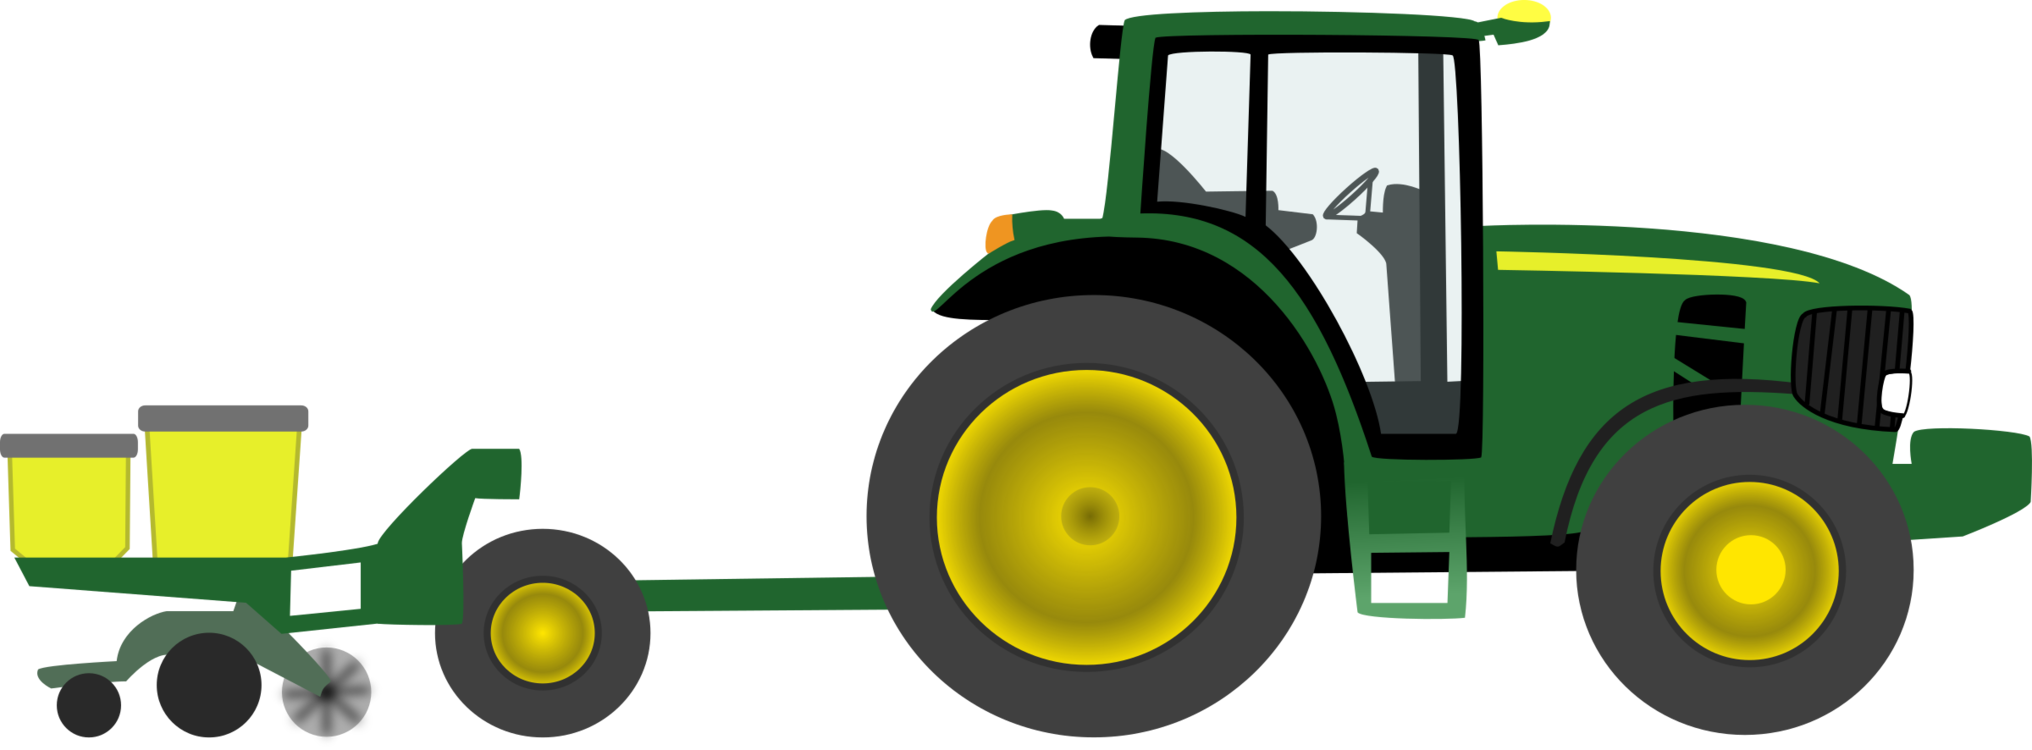 vector transparent download John Deere Tractor Agriculture Farm free commercial clipart